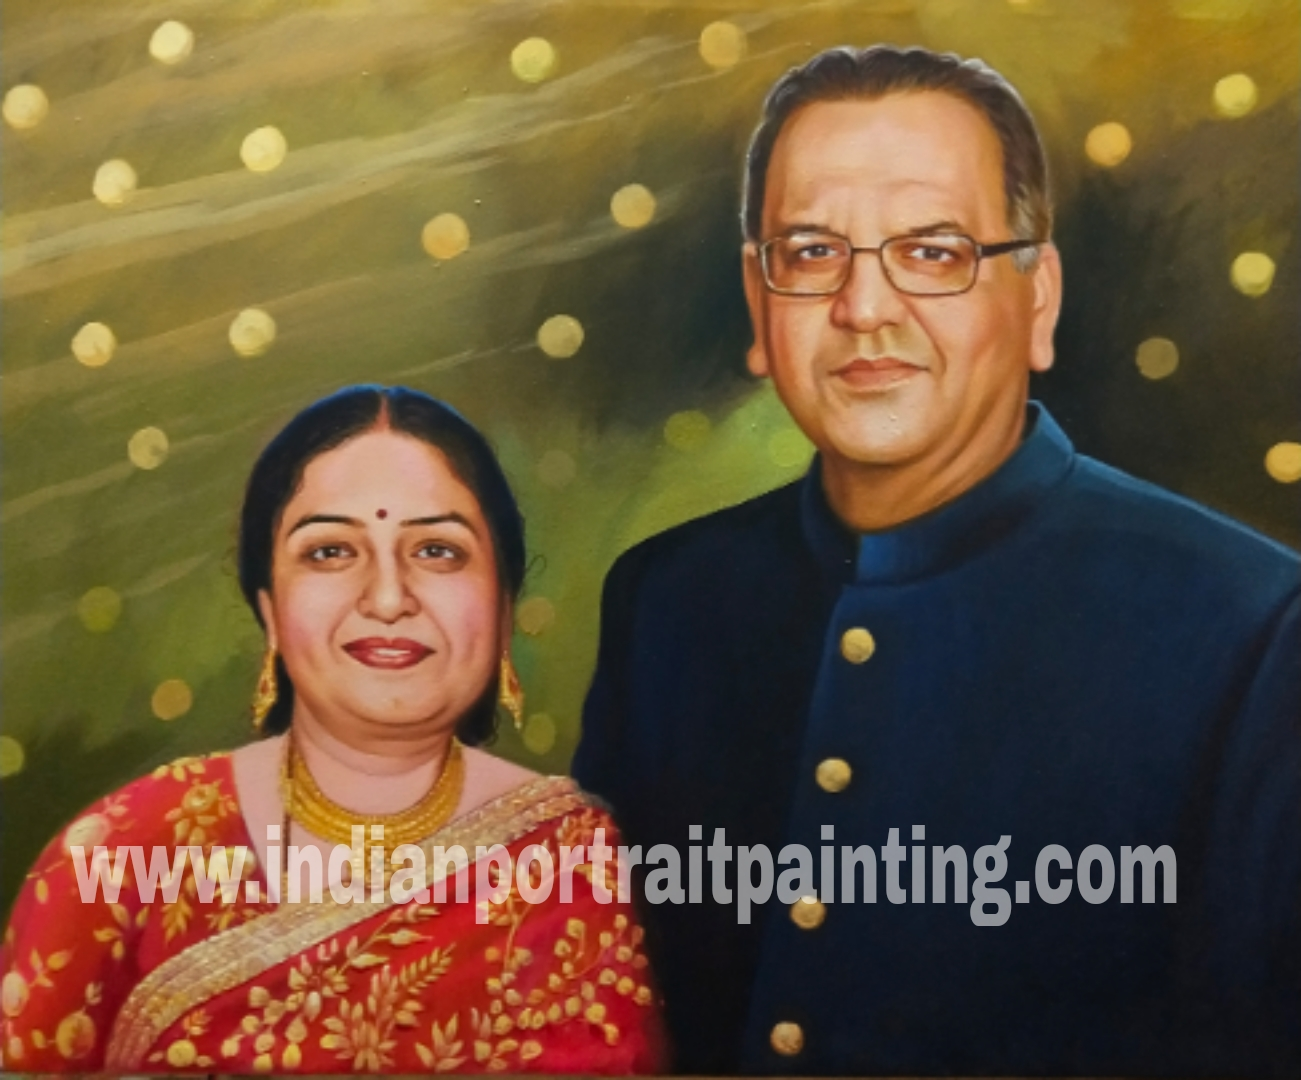 Personalized made real portrait painting